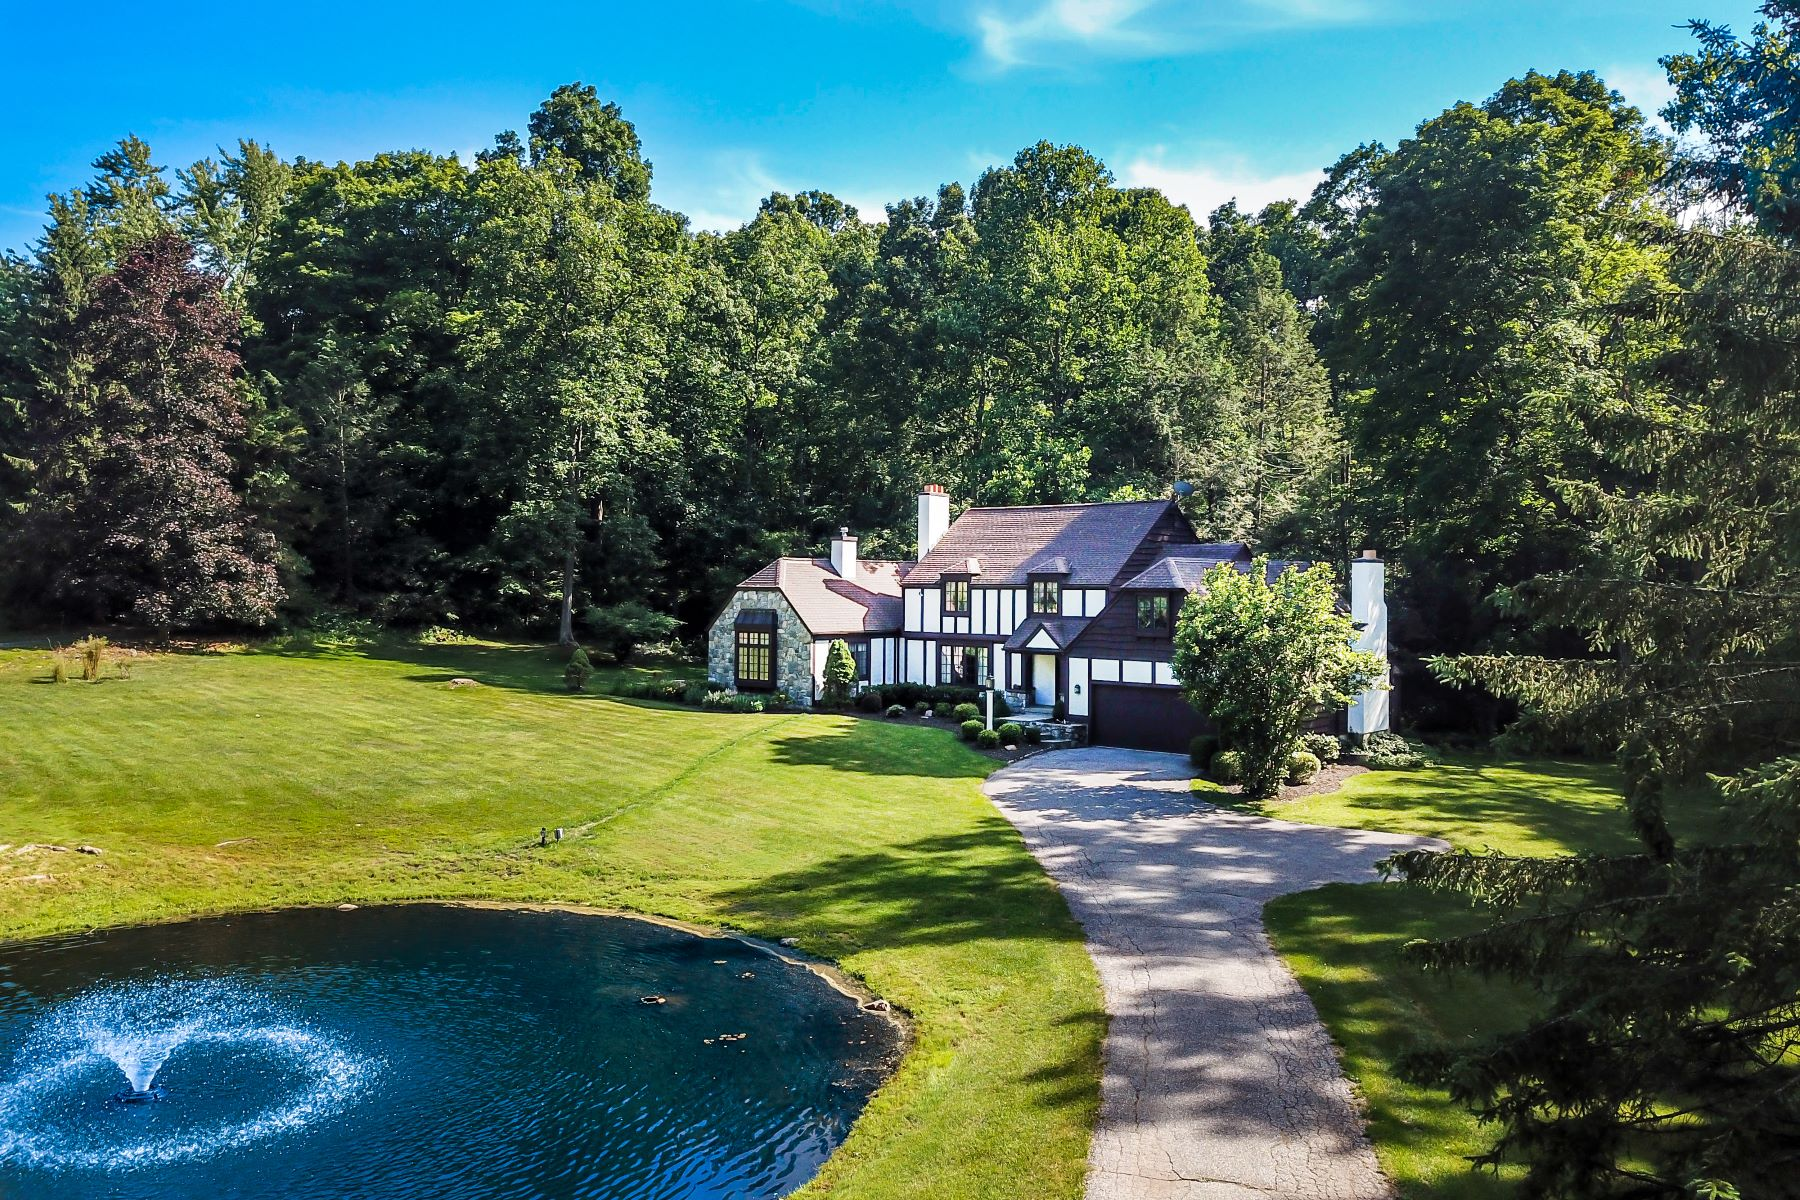 Single Family Homes for Active at Attention To Quality And Craftsmanship 33 Obtuse Road North Brookfield, Connecticut 06804 United States